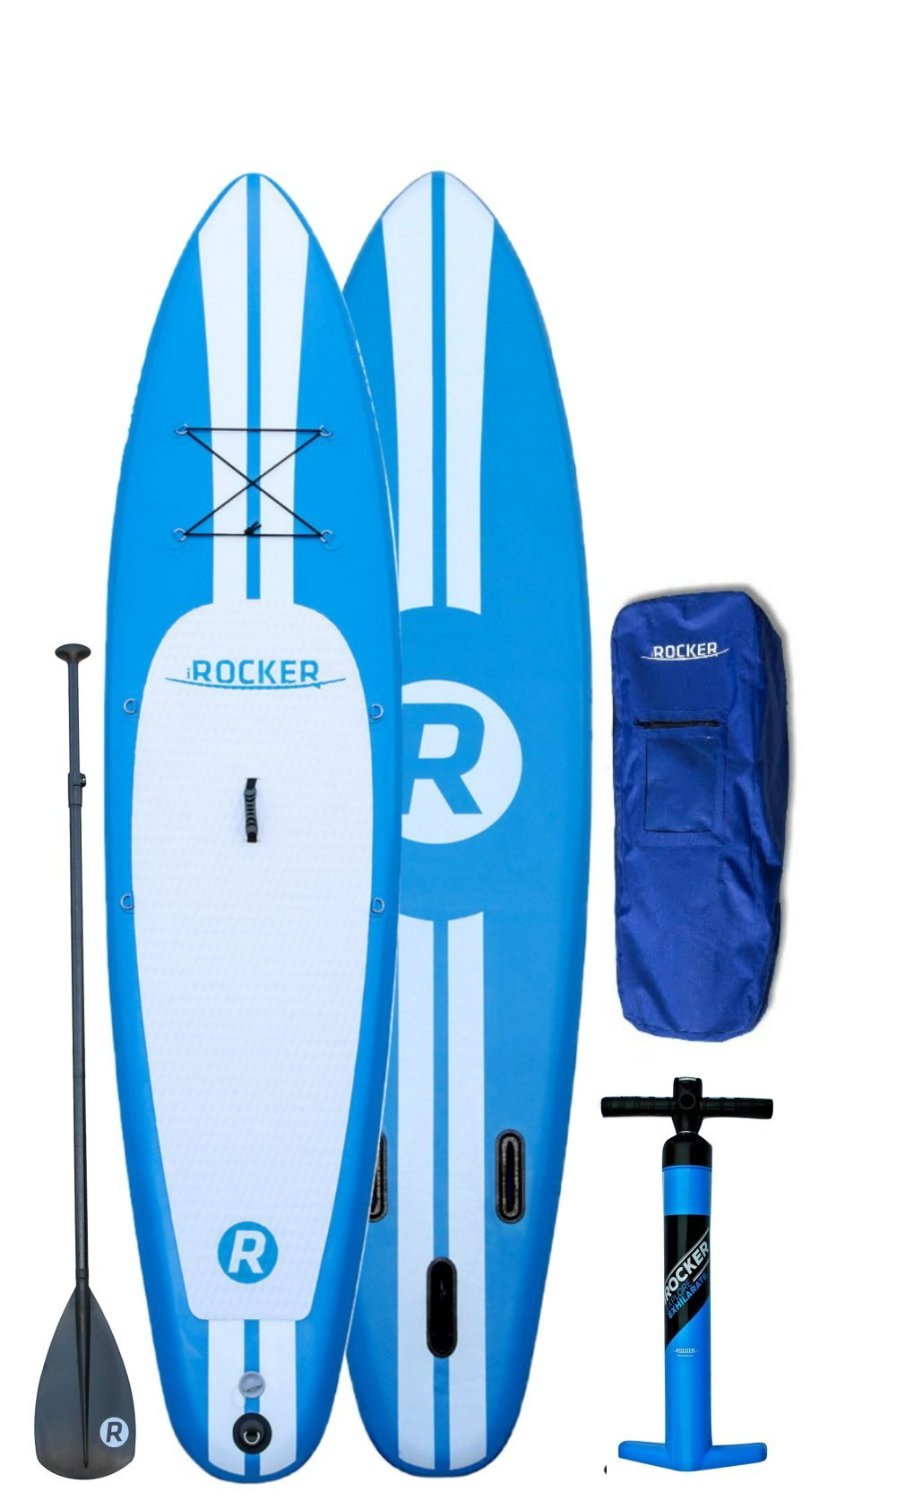 iRocker Paddle Boards 10' Inflatable SUP Review